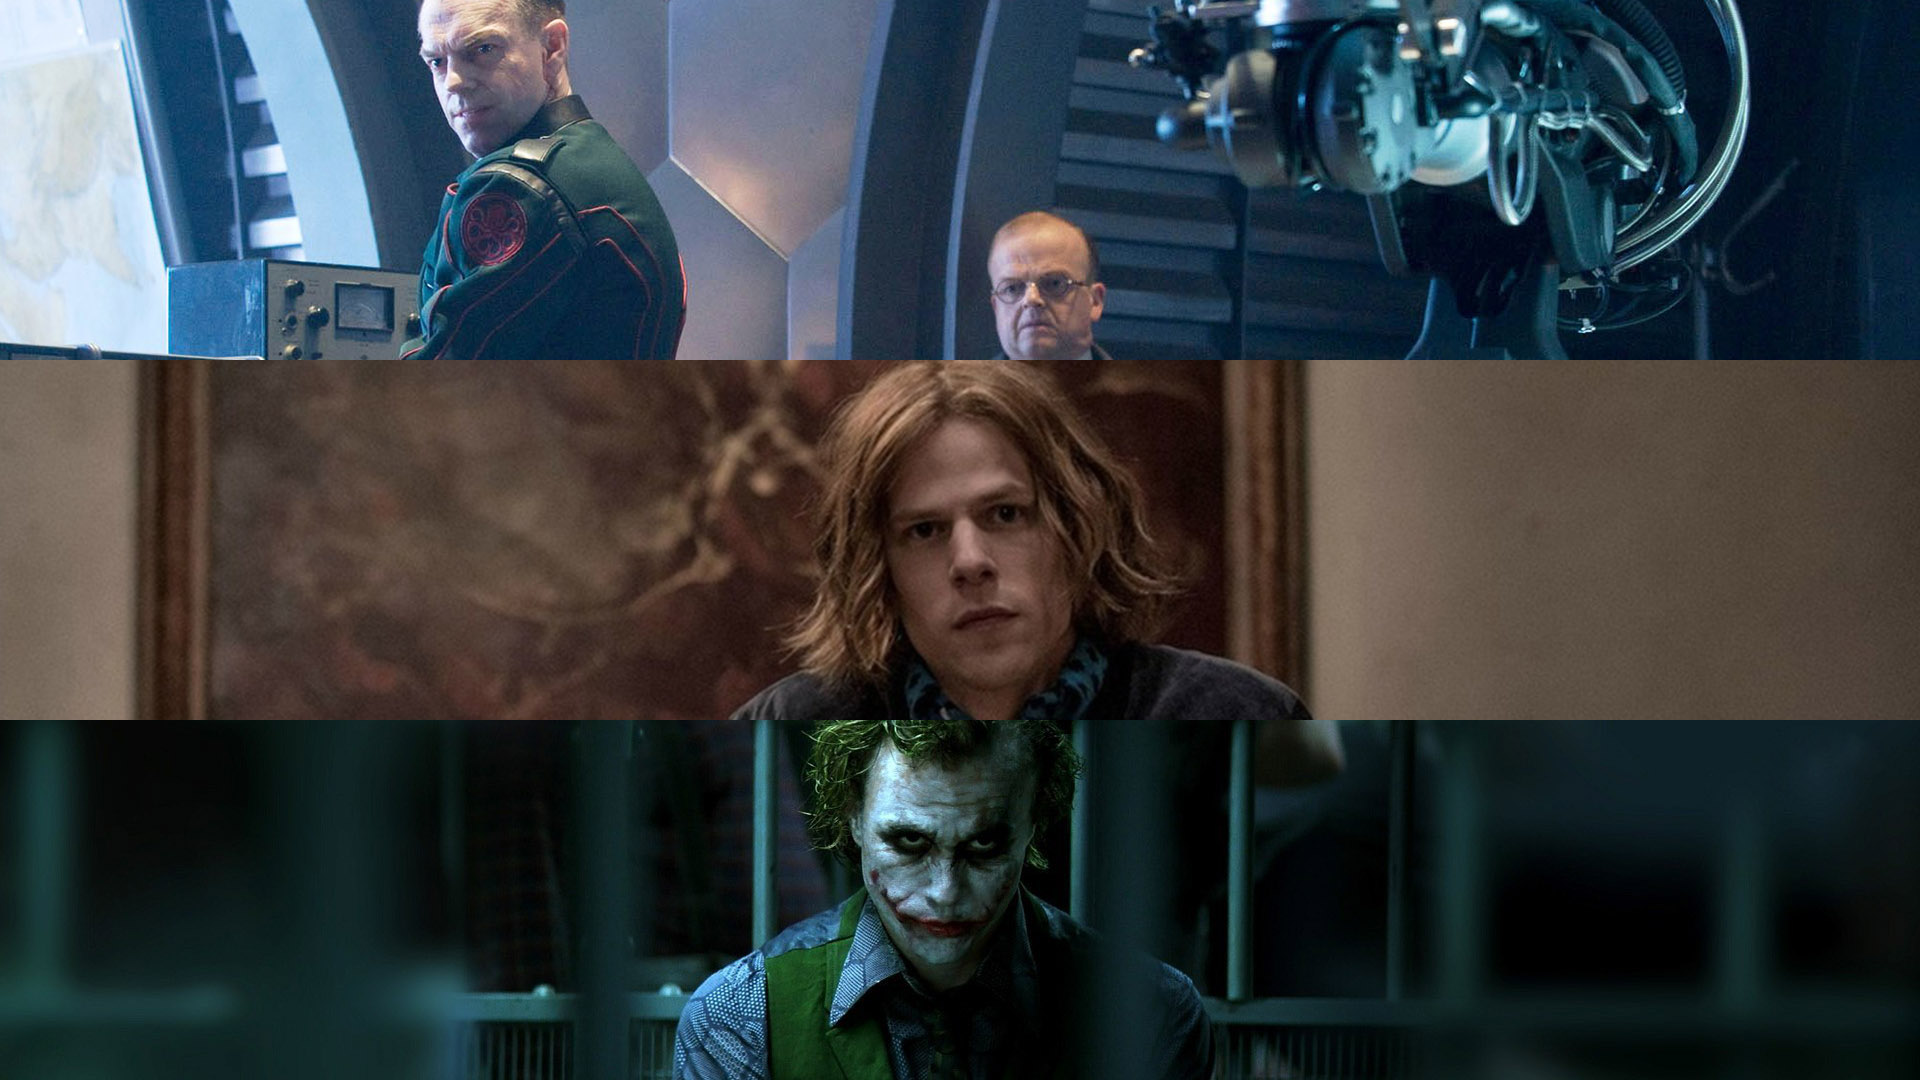 Hydra, Lex Luthor, and Joker – these enemies never become unmotivated no matter how much setback they experience.